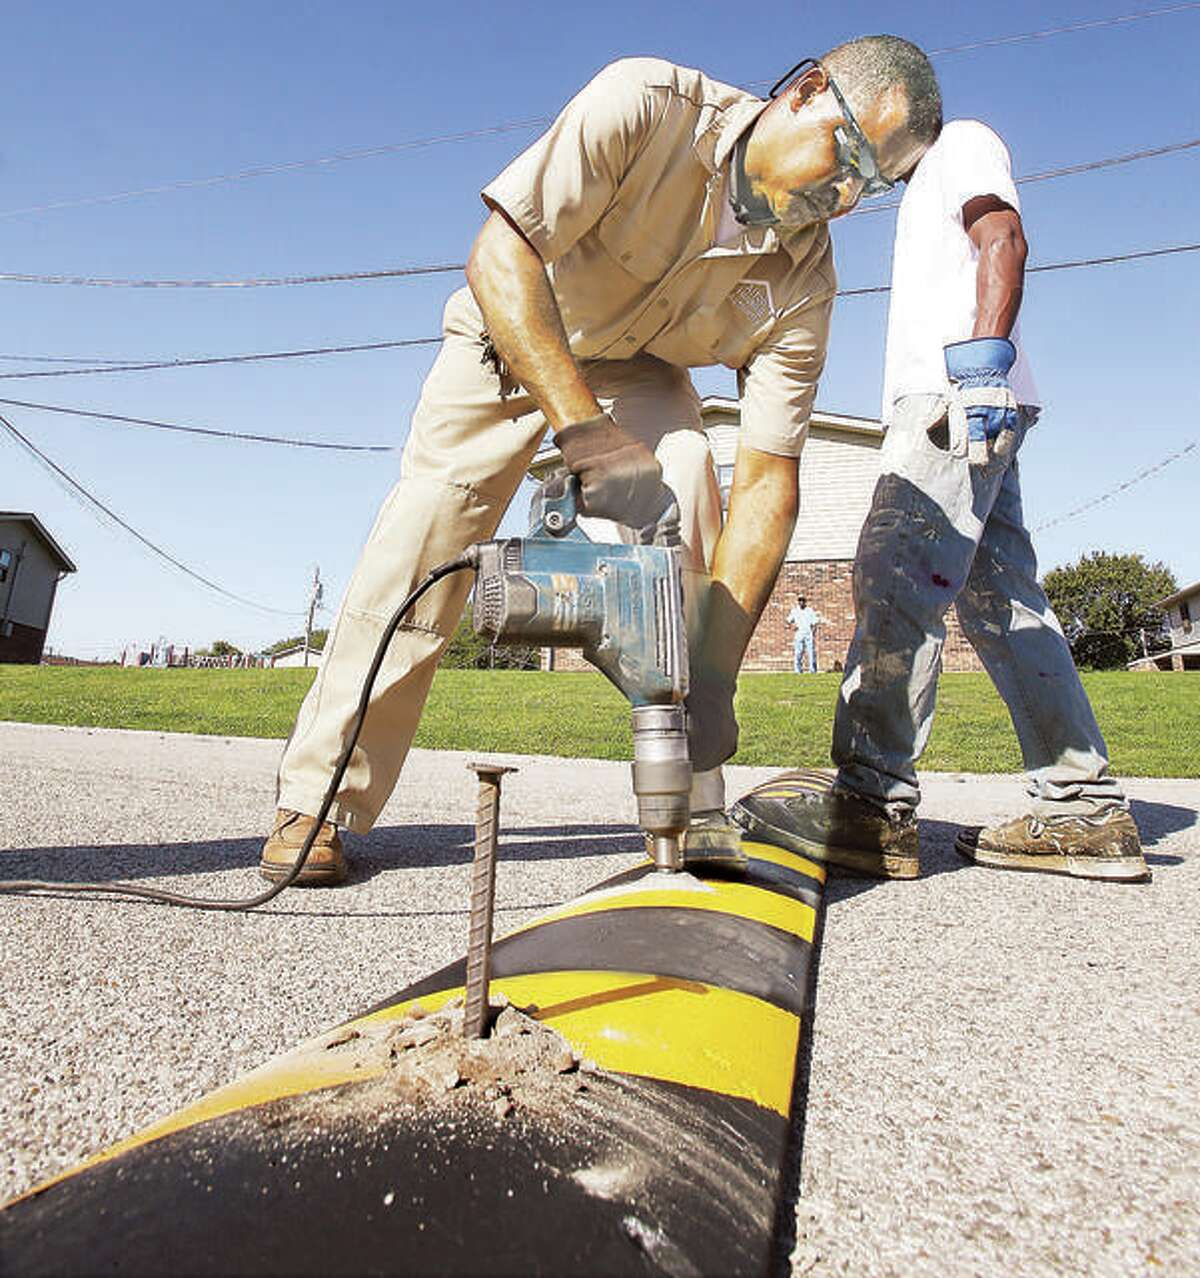 In this 2017 file photo, speed bumps are installed in Madison County. The installation is not likely on Esic Drive due to its status as a collector road, handling at least 1,000 vehicles a day per IDOT. Instead, those might be an option for some of the adjacent streets where residents say speeding is an issue.